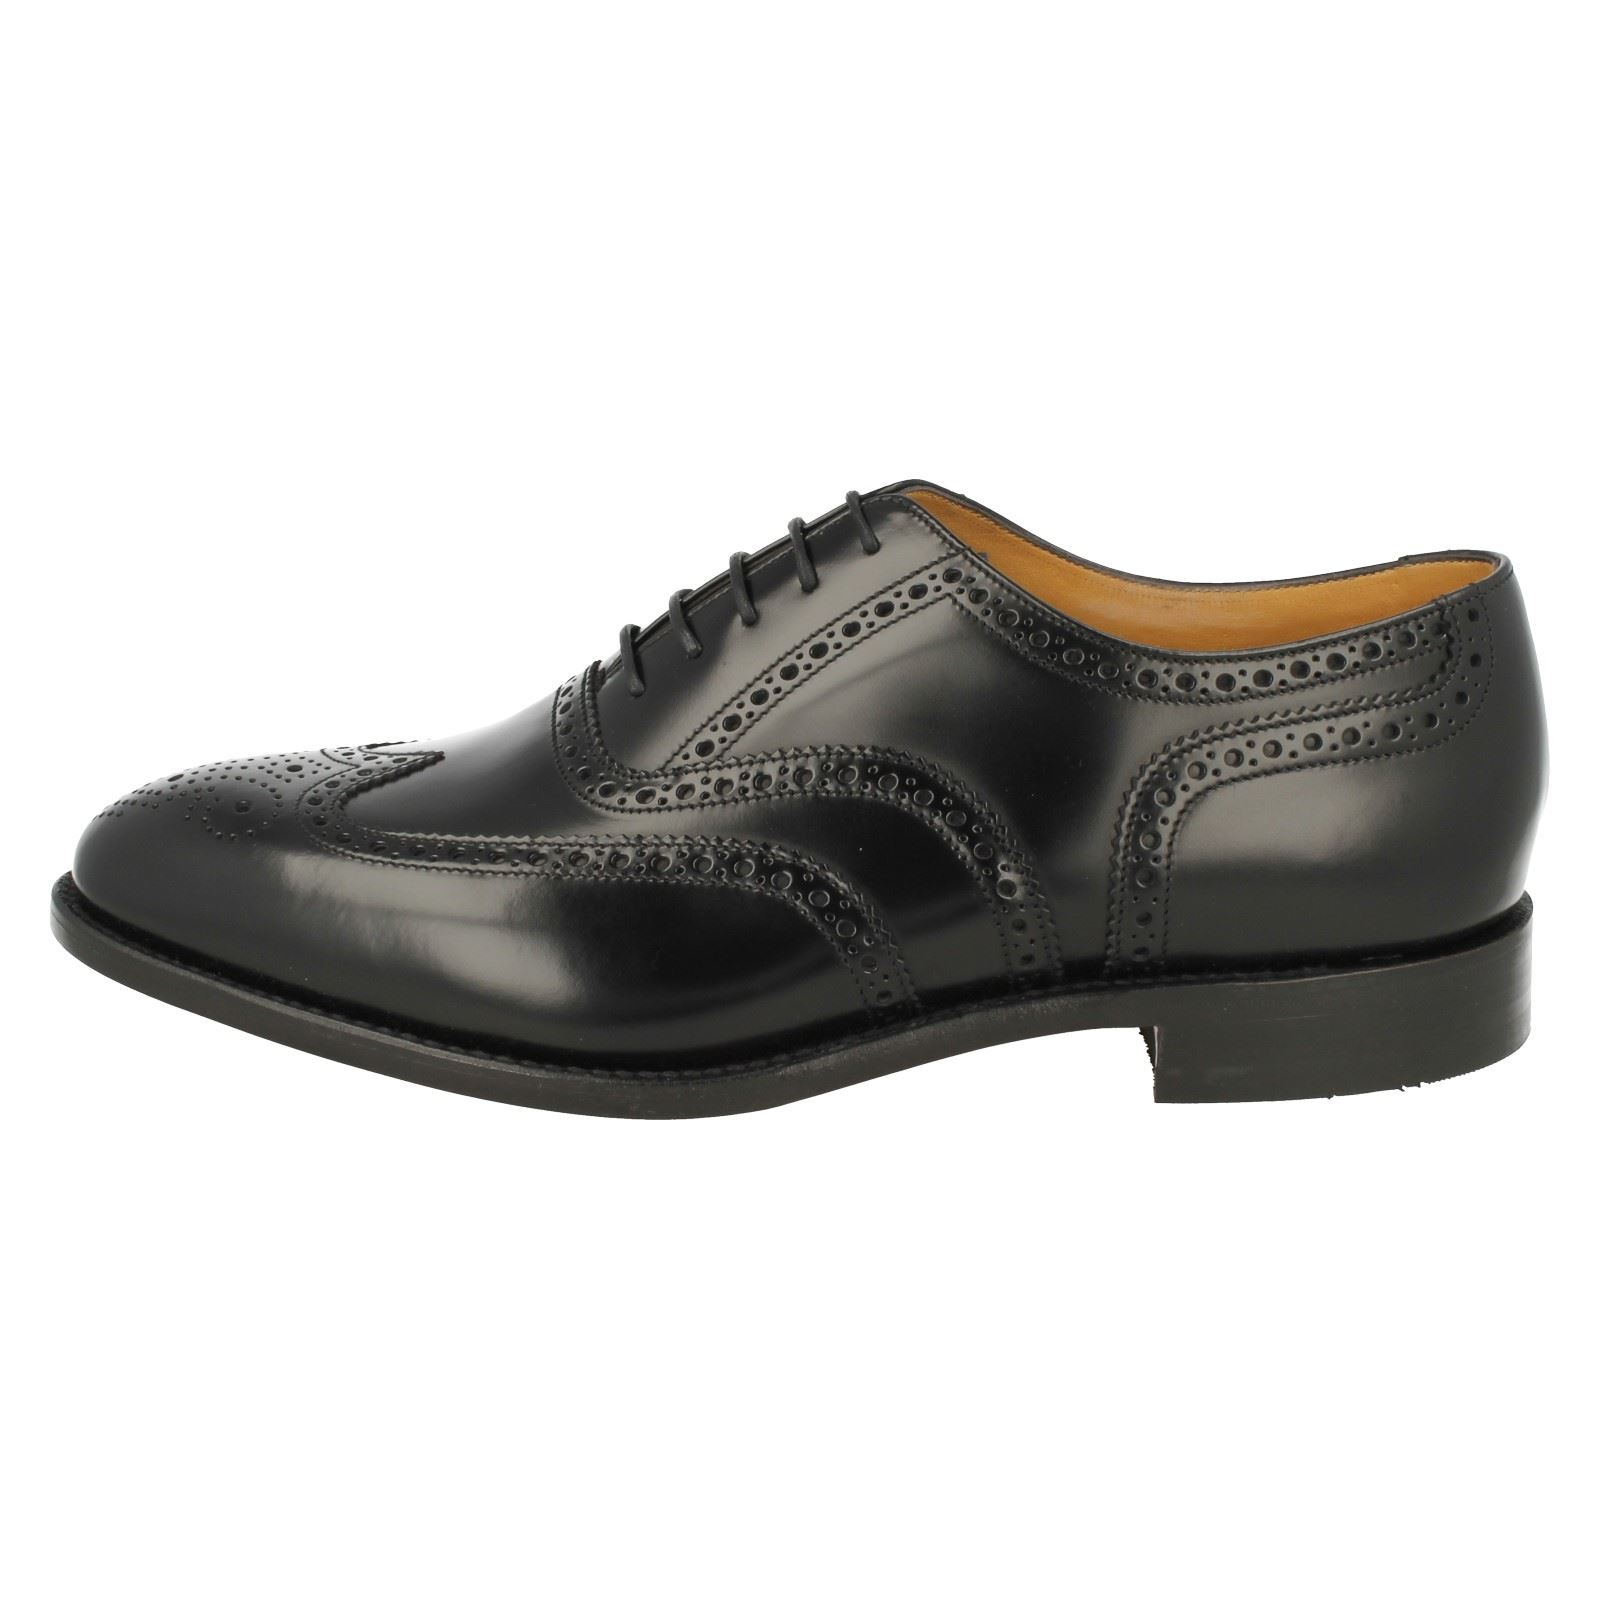 Shoes Mens 758 Formal Loake Black ZR0Zxznw